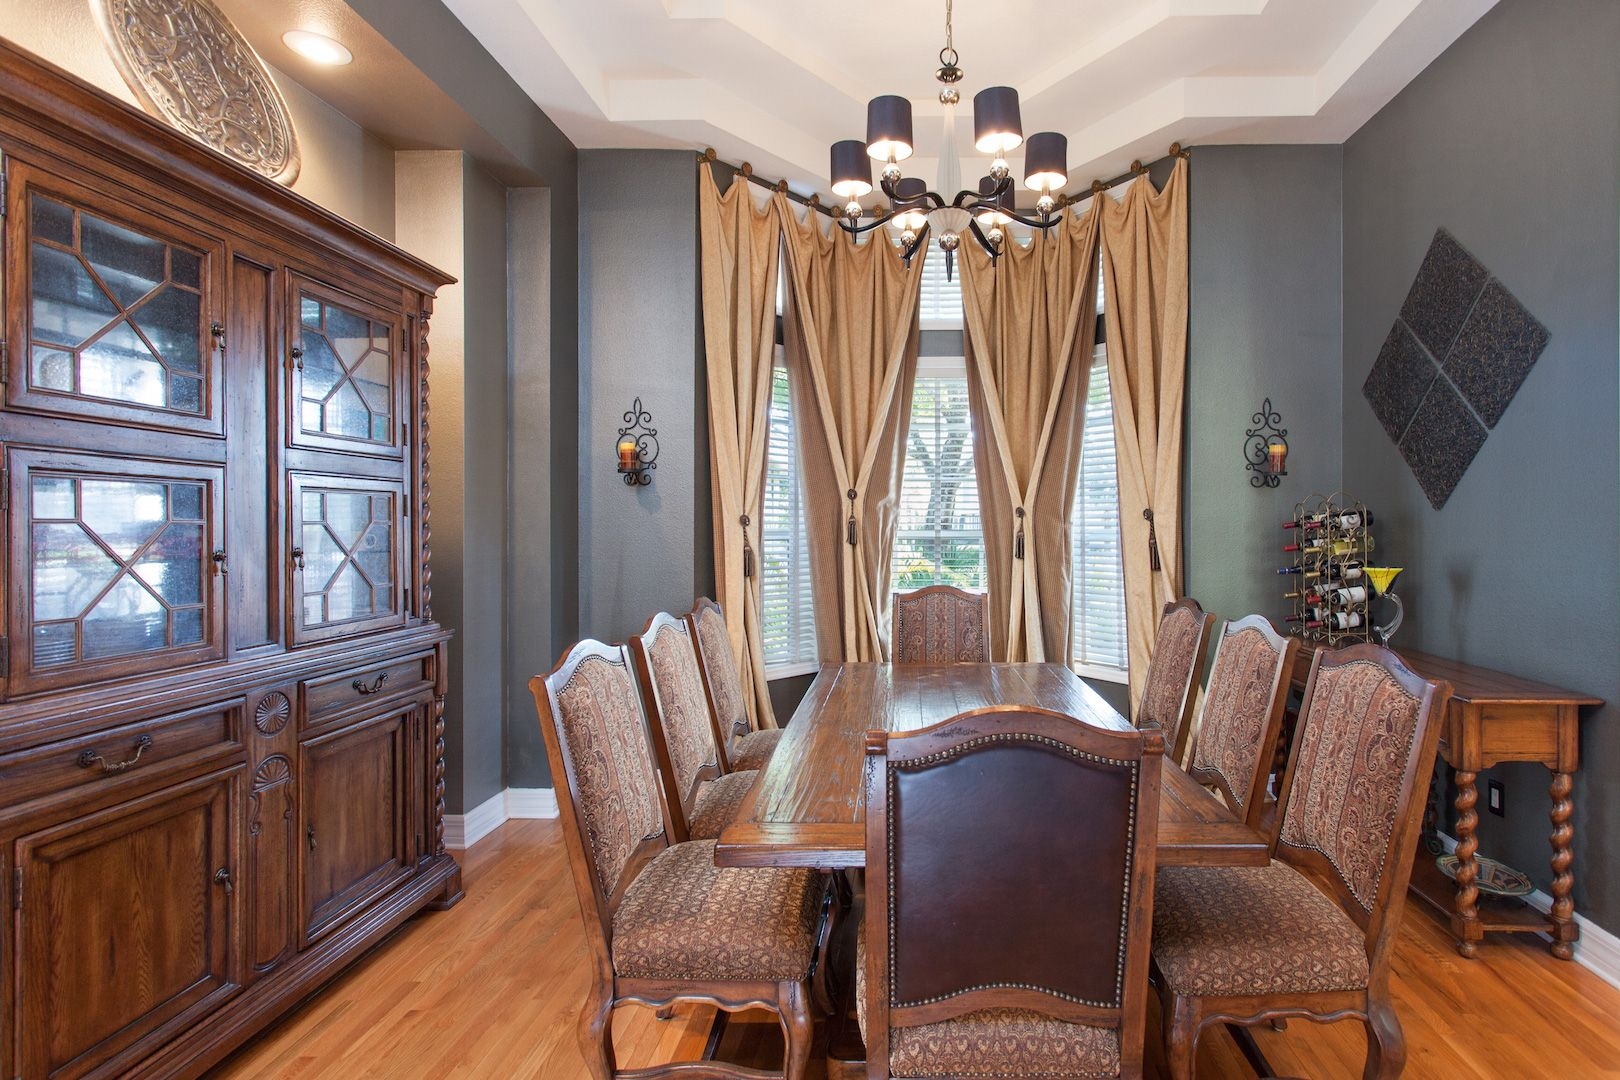 Dining Room With Rich, Rustic Furniture